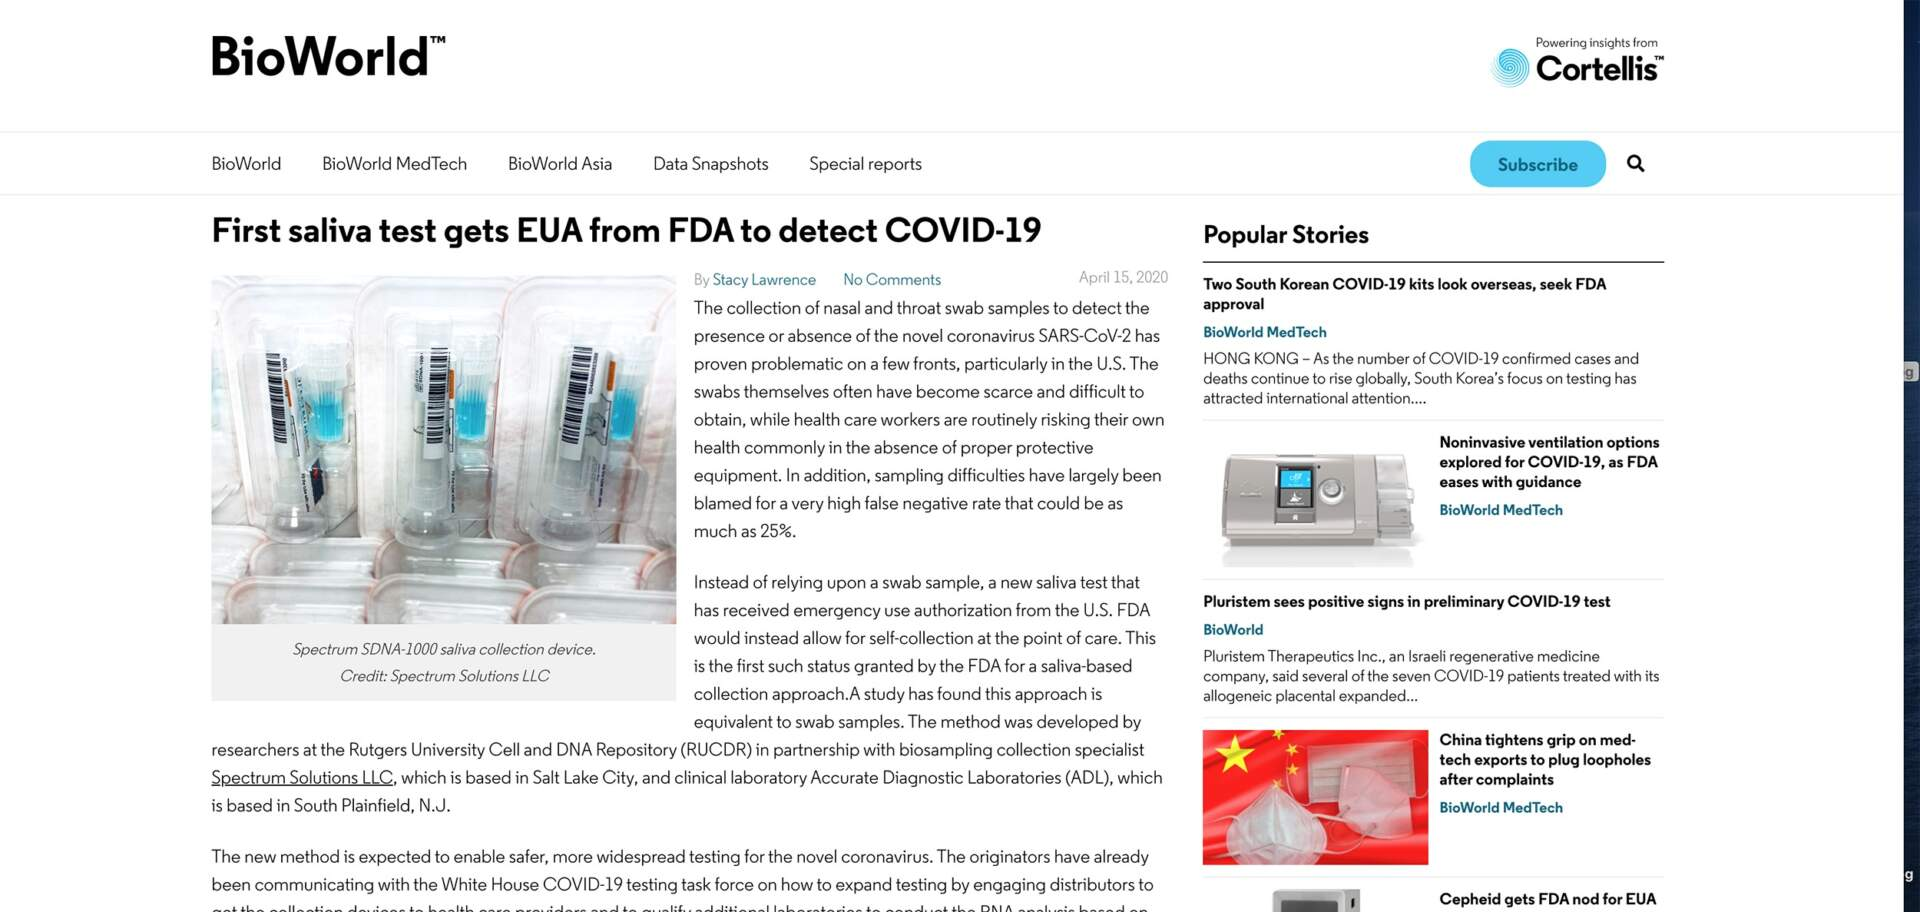 BIOWORLD-First saliva test gets EUA from FDA to detect COVID-19